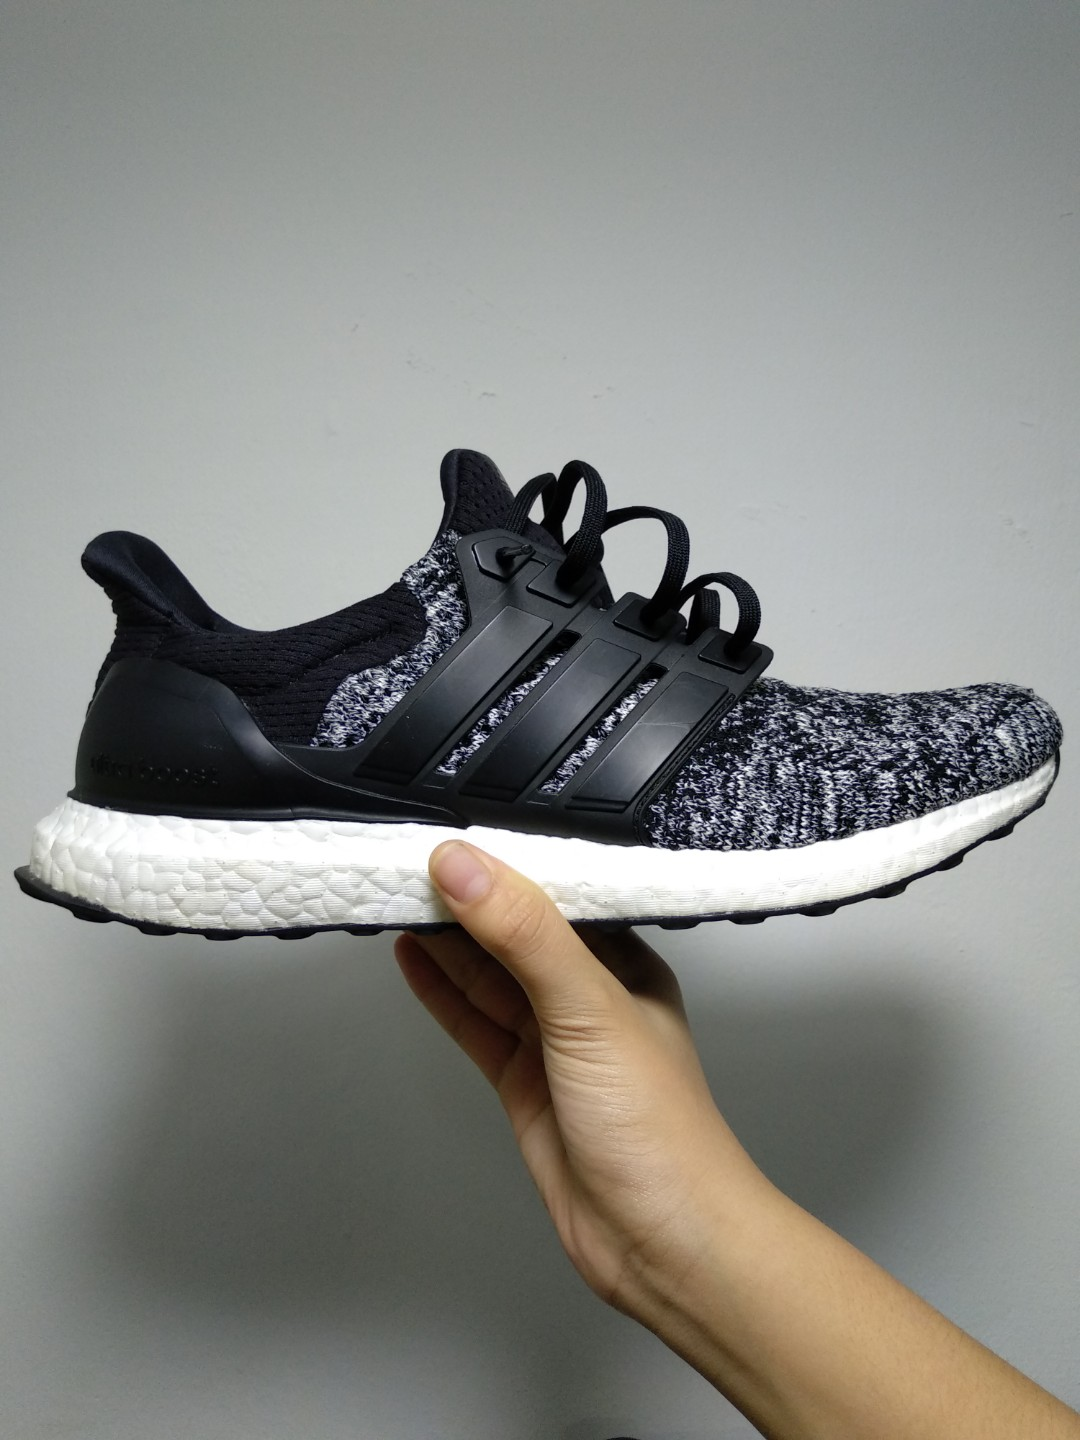 838bdb97cc6c9 PRICE REDUCED  Adidas Ultra Boost 1.0 Reigning Champ